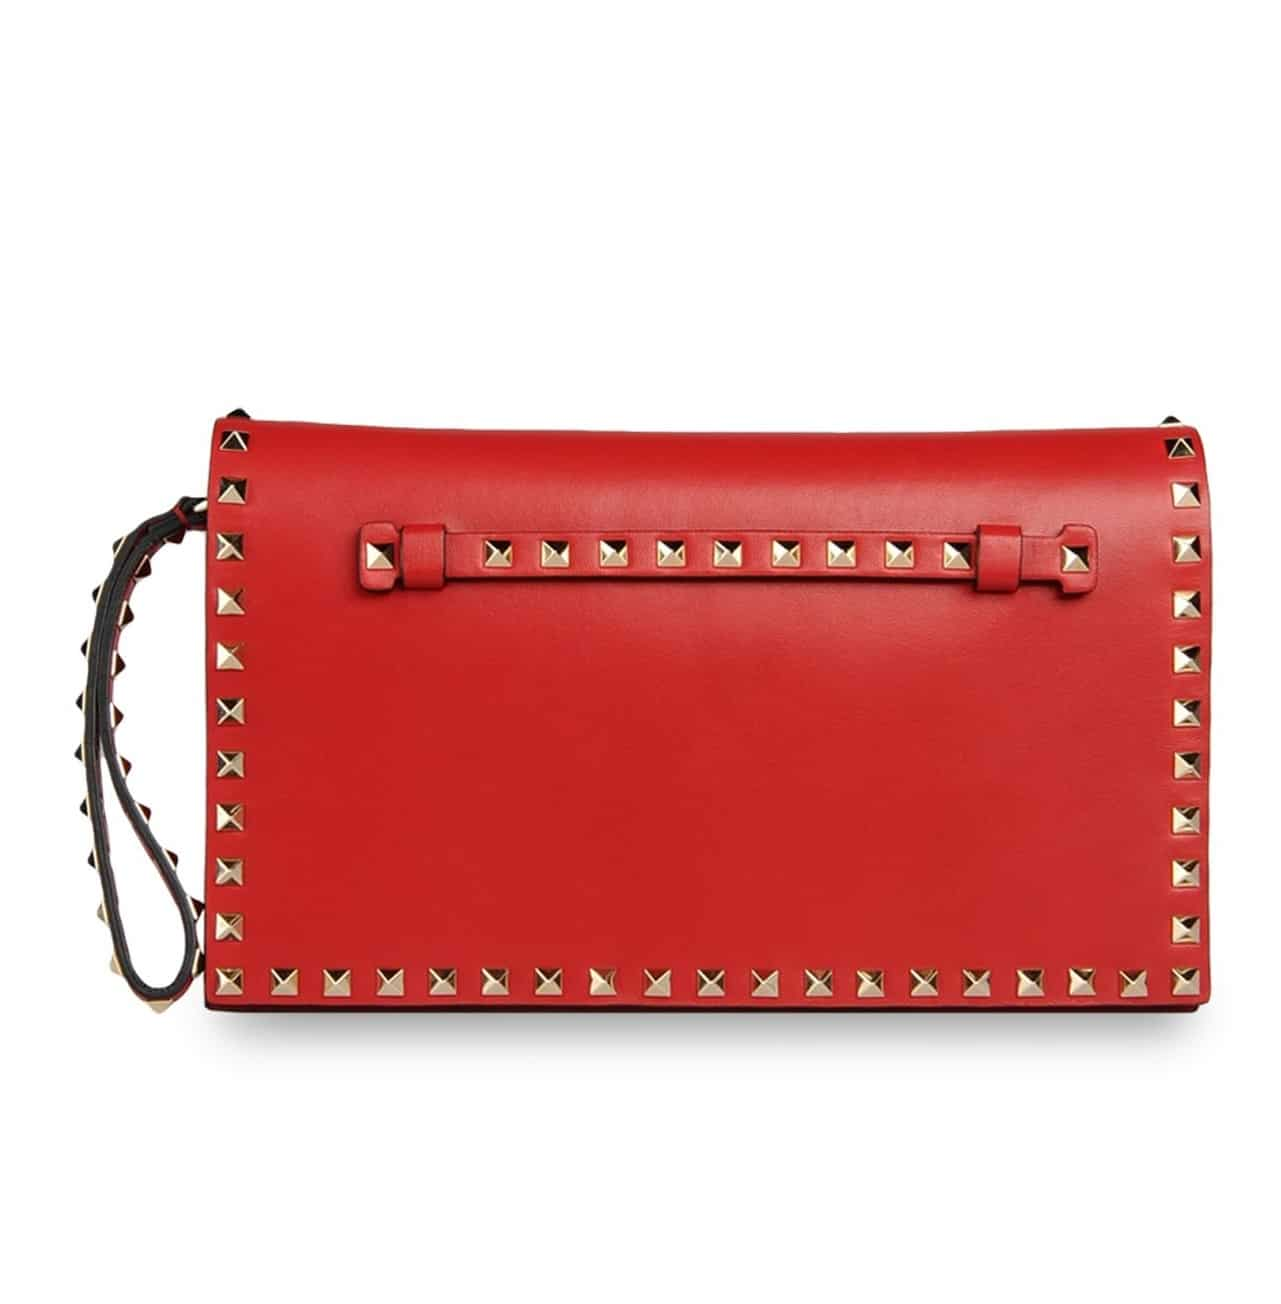 RED Valentino Studded clutch bag XXfKgDR